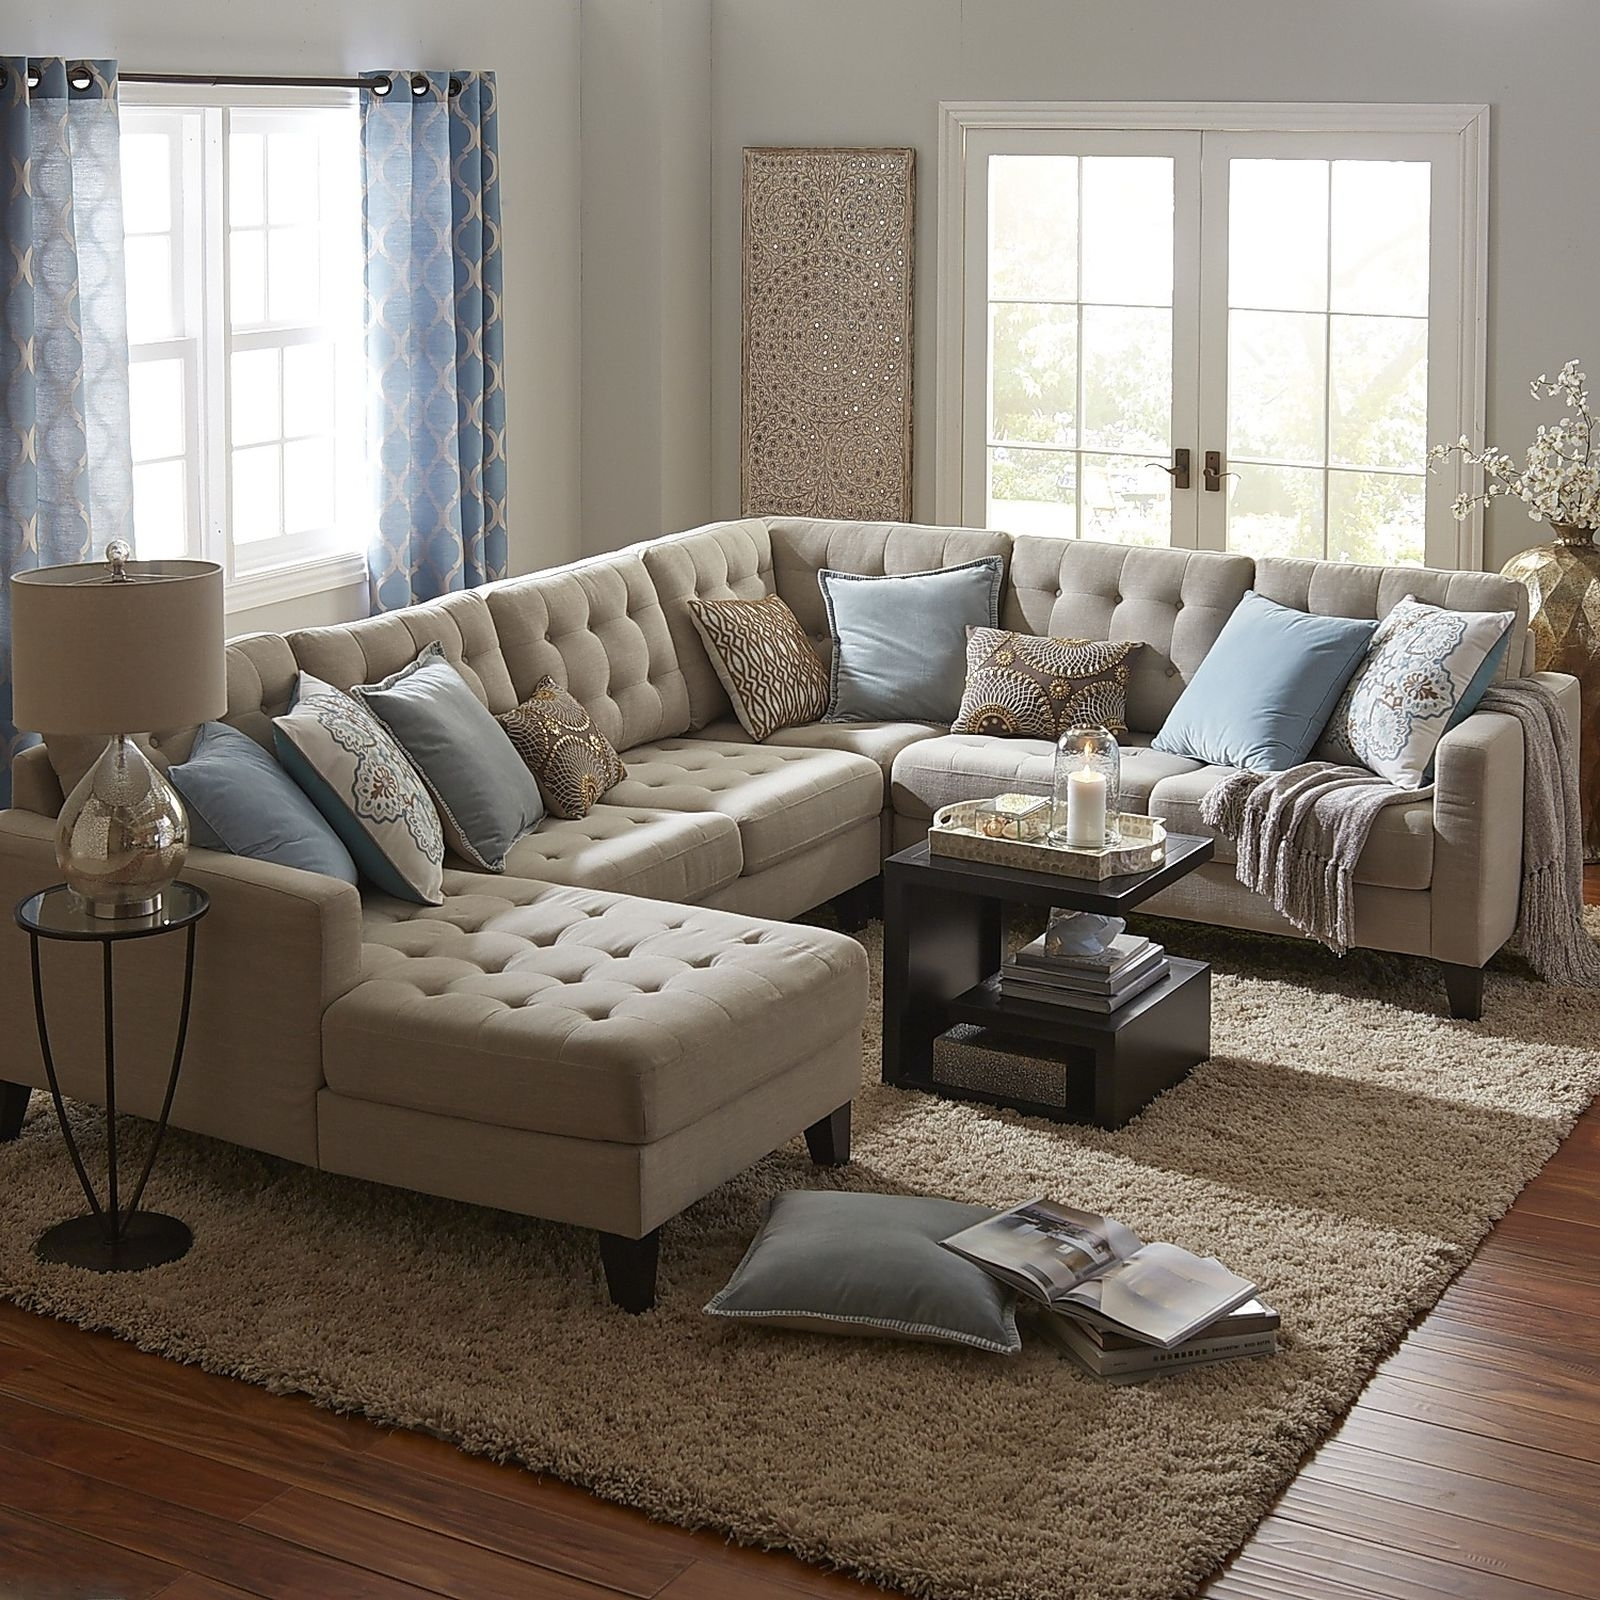 Sectional Sofas With Favorite Epic Sectional Sofas 89 Living Room Sofa Inspiration With (View 12 of 15)